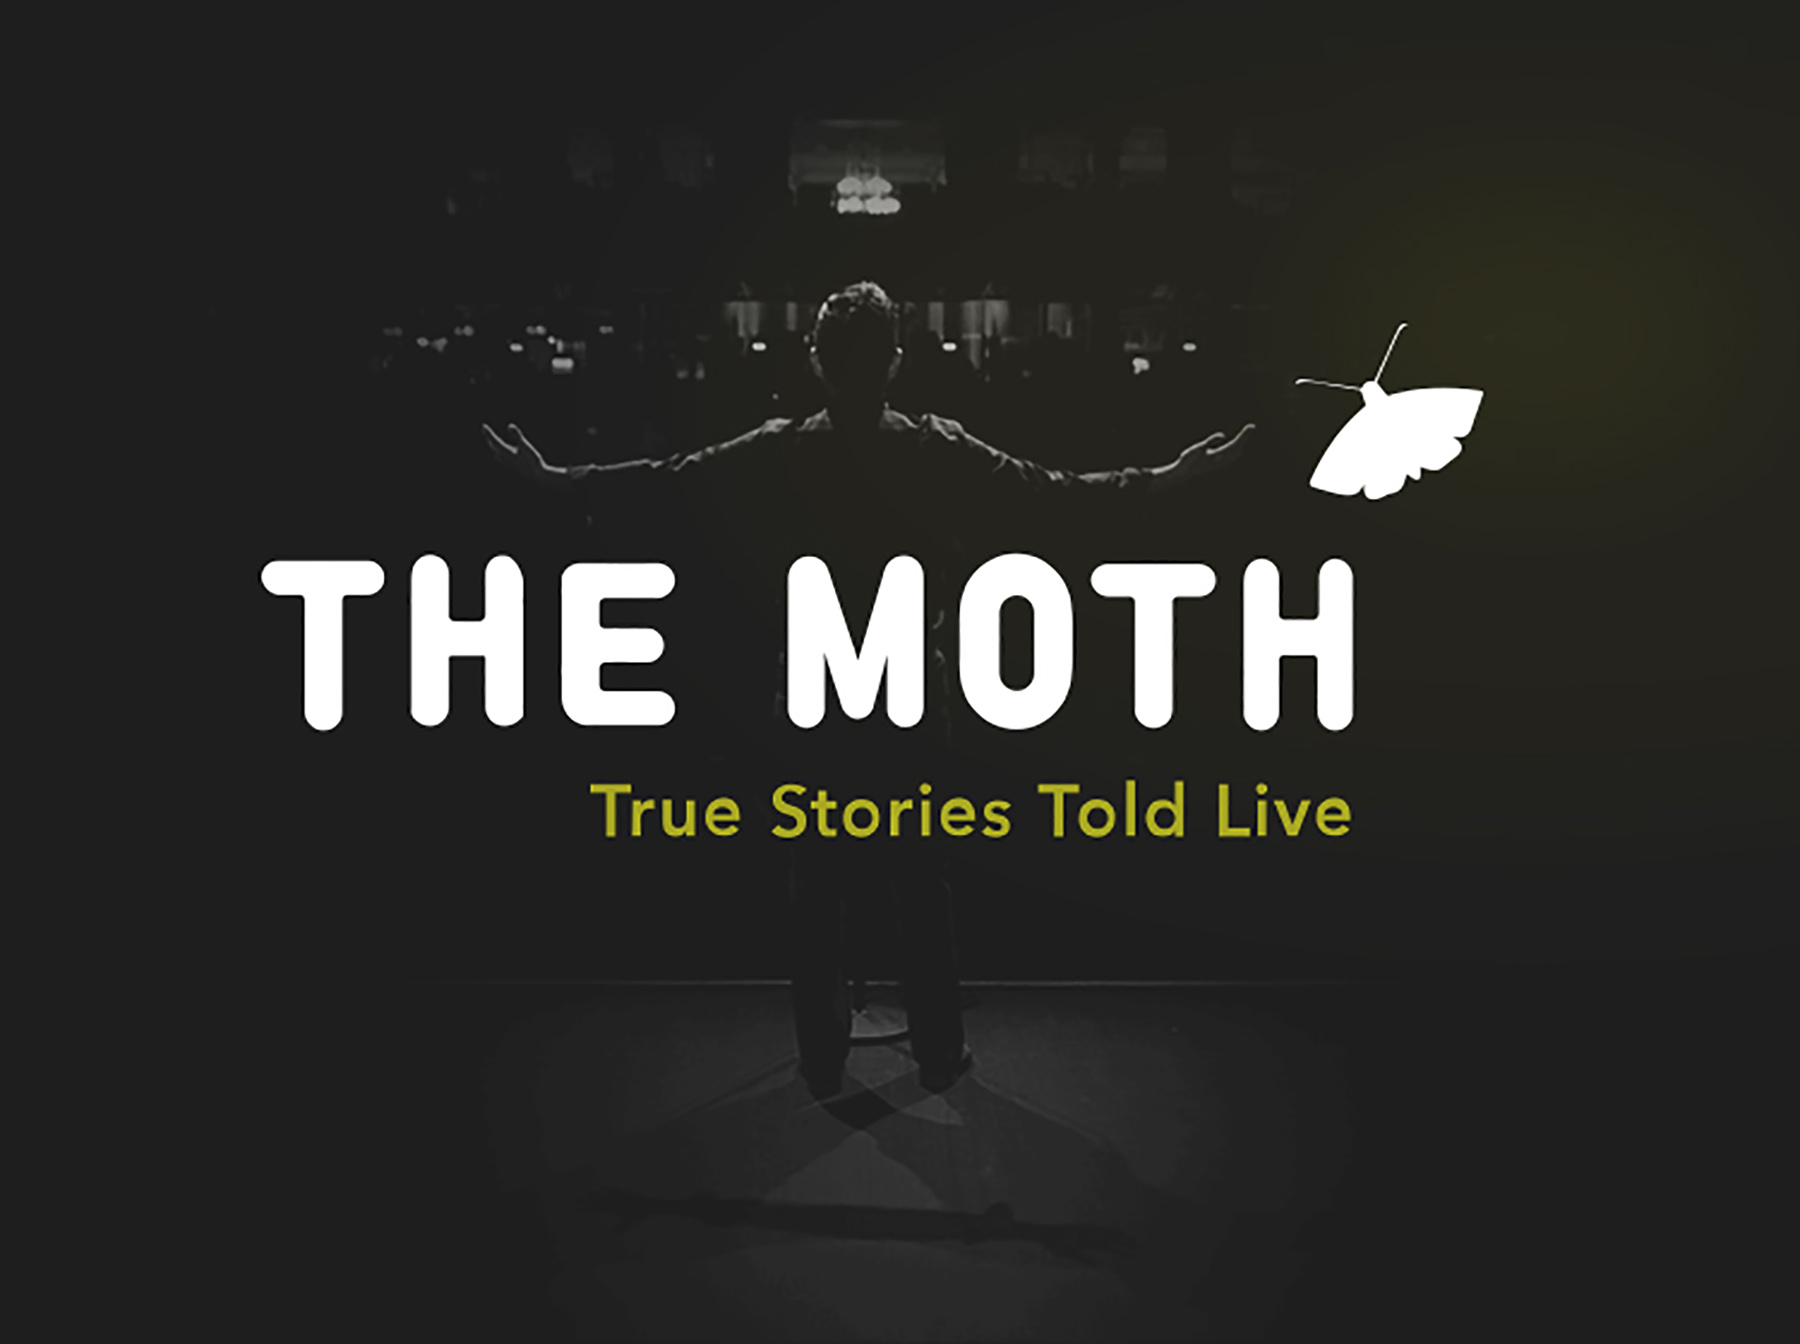 the-moth-logo-web.jpg